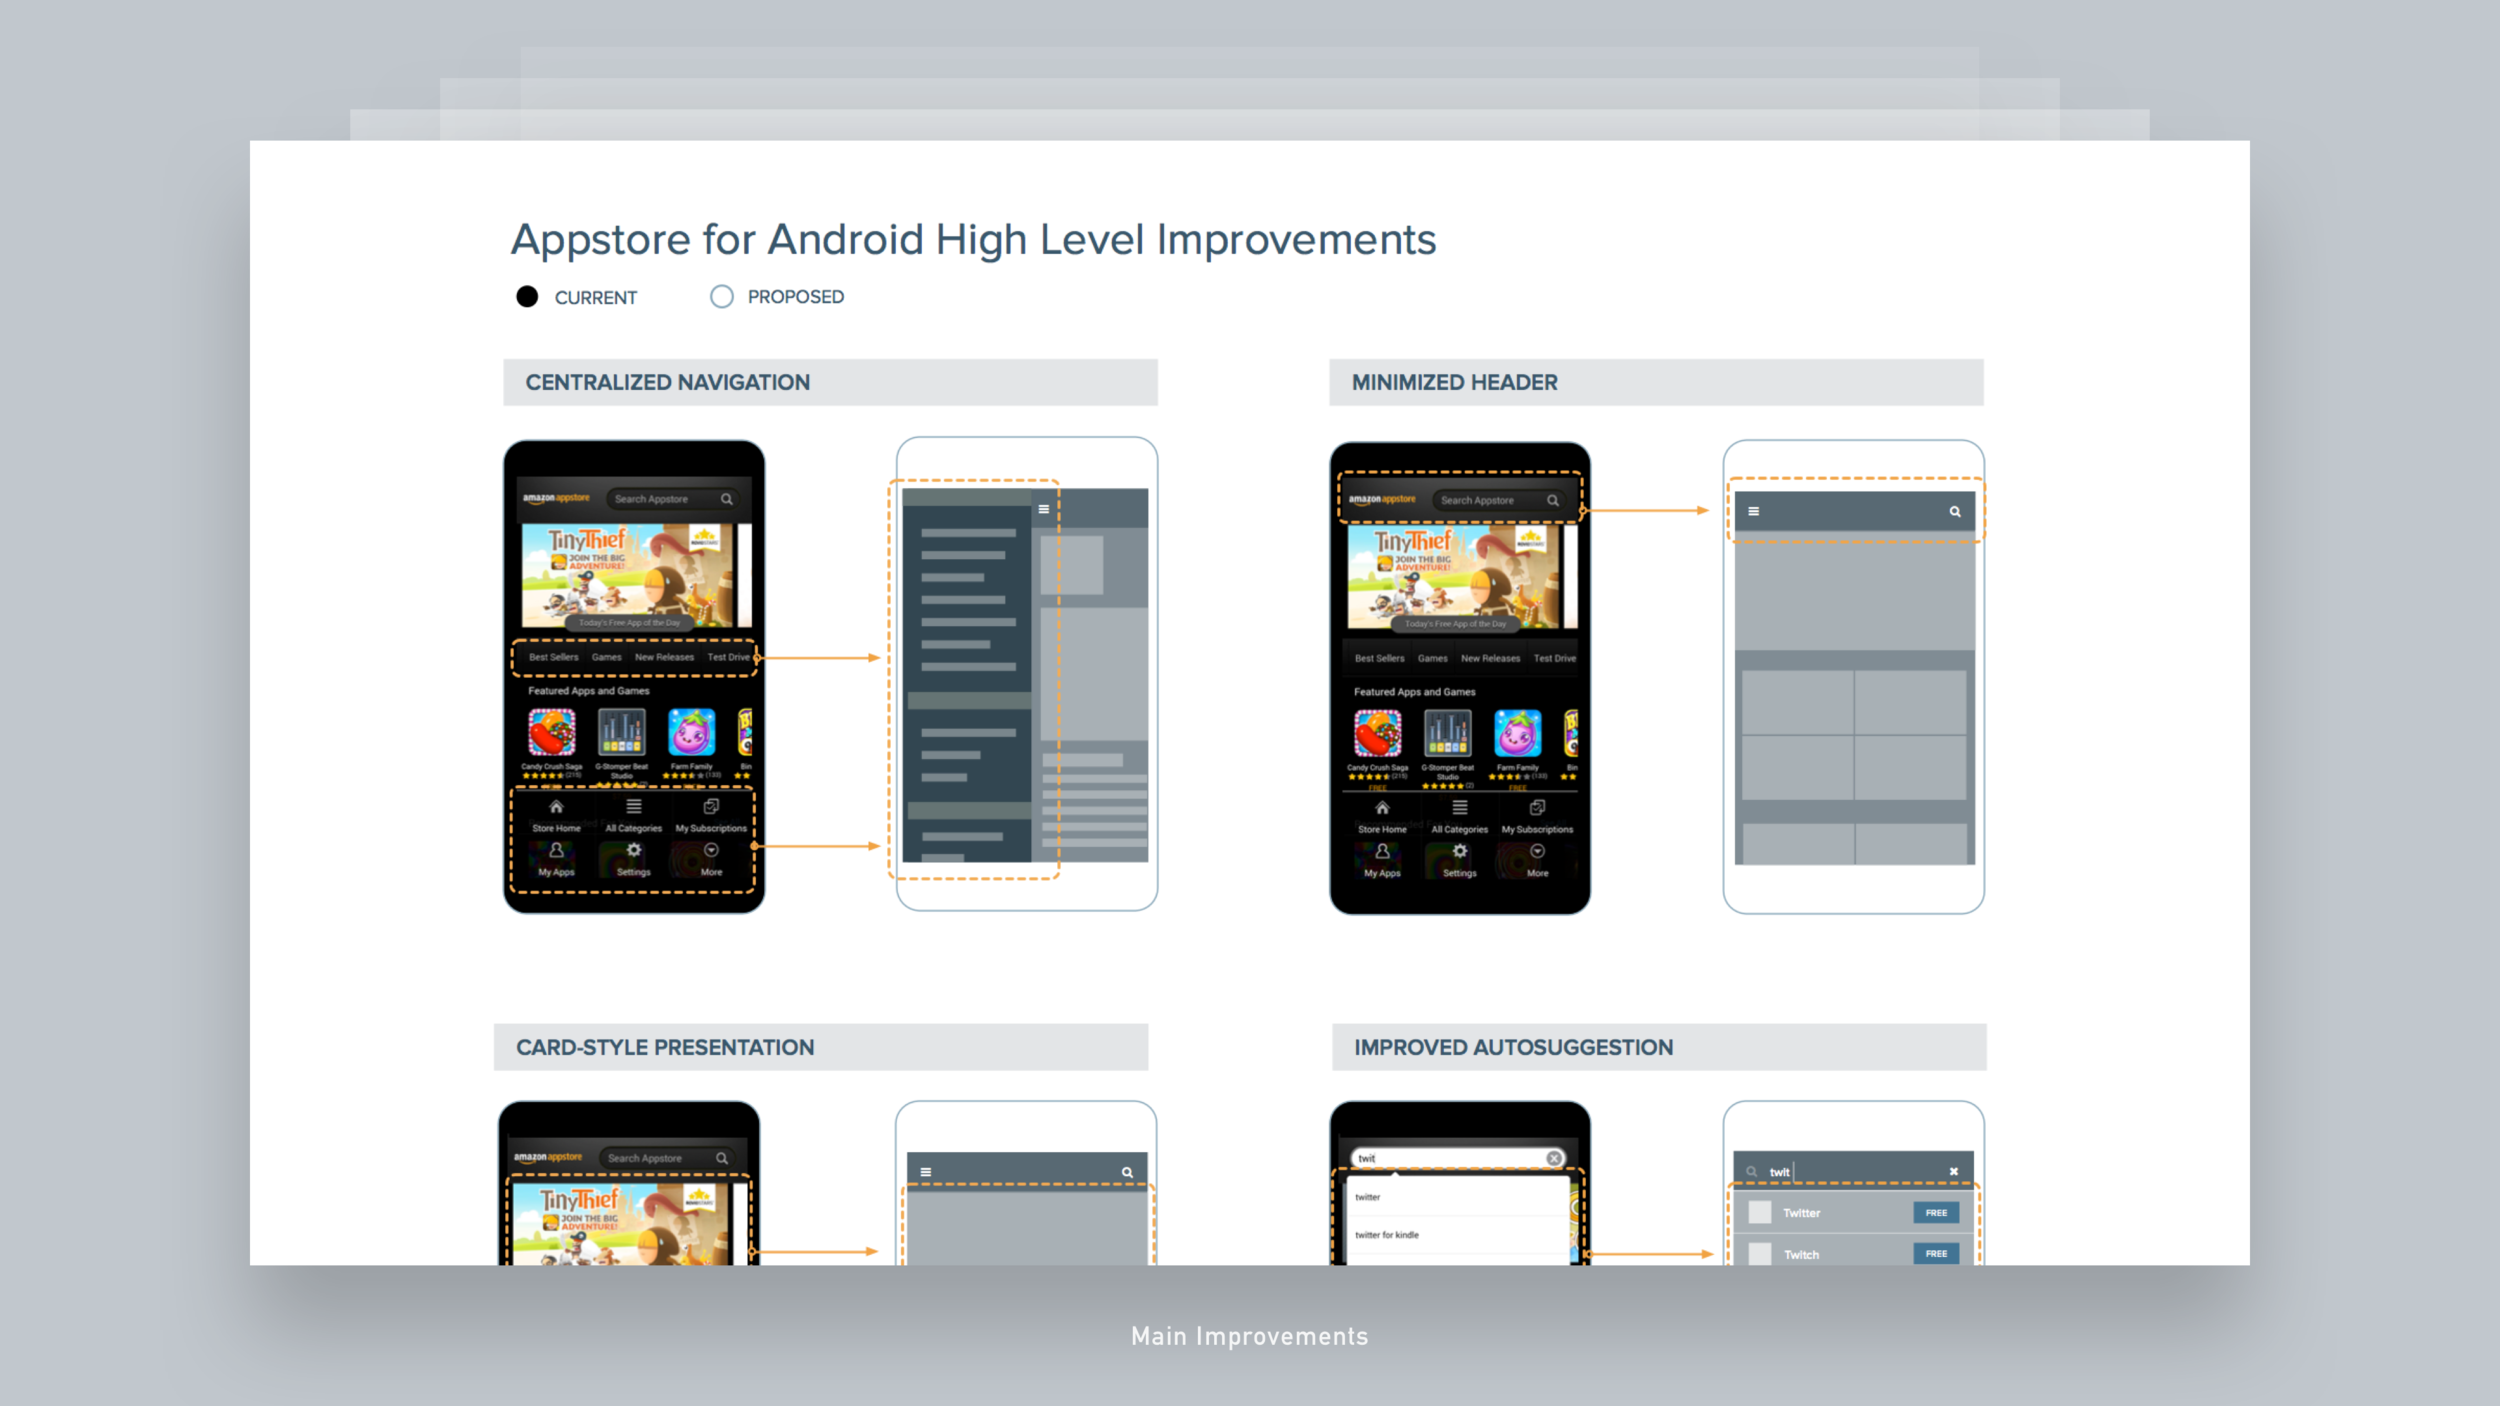 01 Main Improvements - Amazon Appstore.png